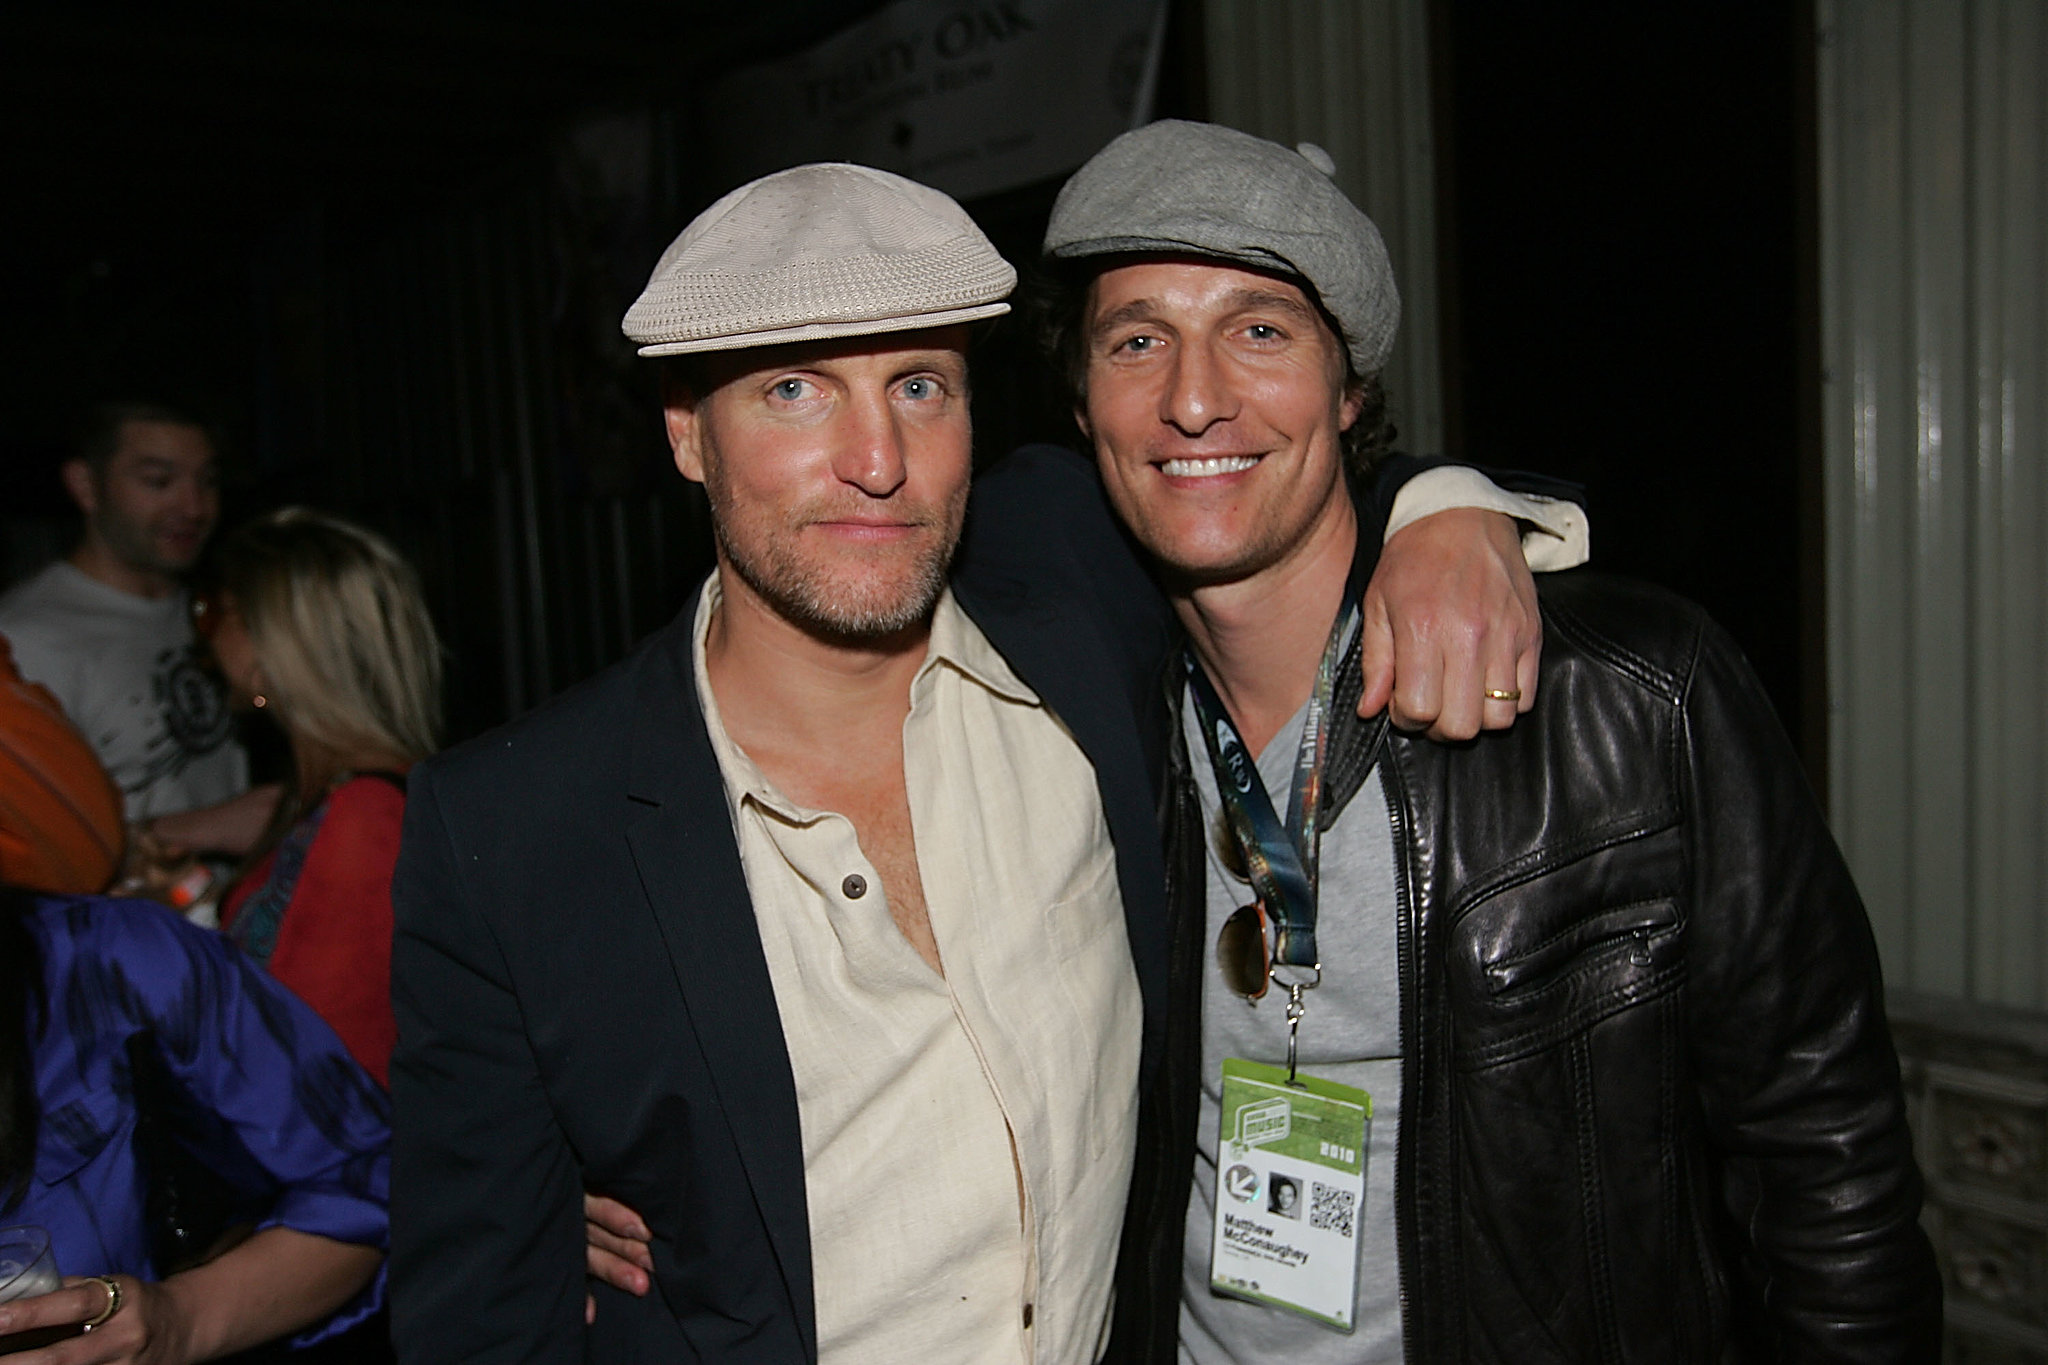 Woody Harrelson and Matthew McConaughey have been longtime friends, and they recently took their relatio